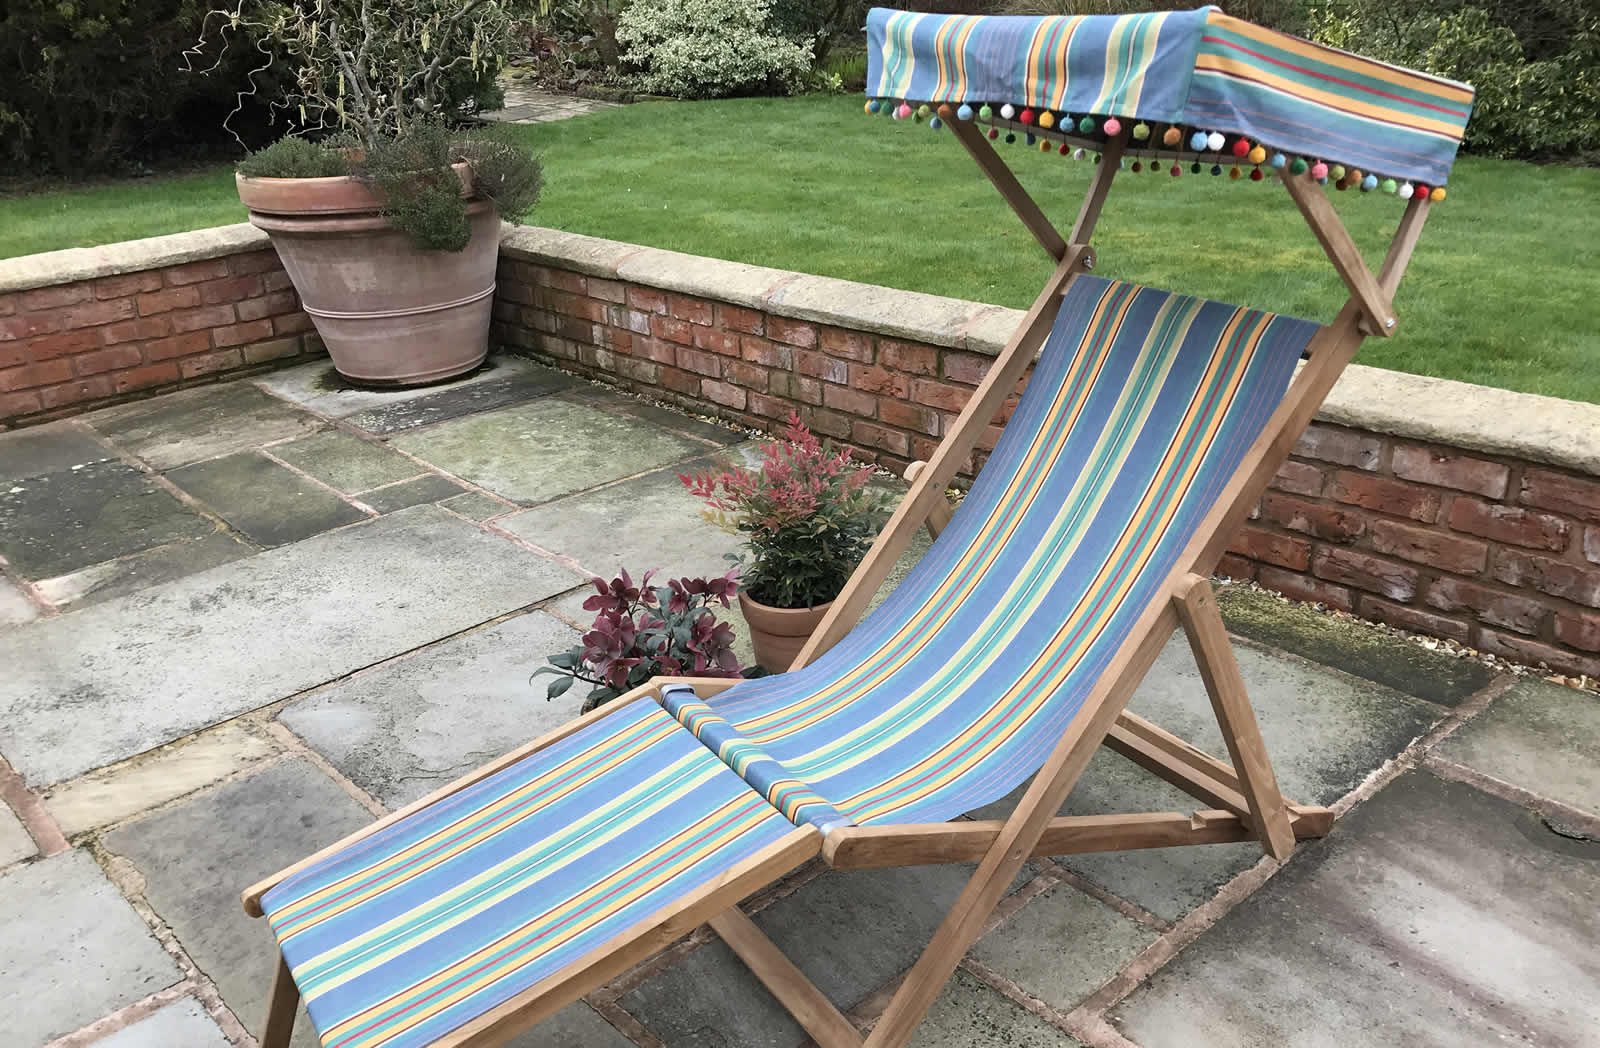 Edwardian Deckchairs with Canopy and Footstool Sky blue, jade green